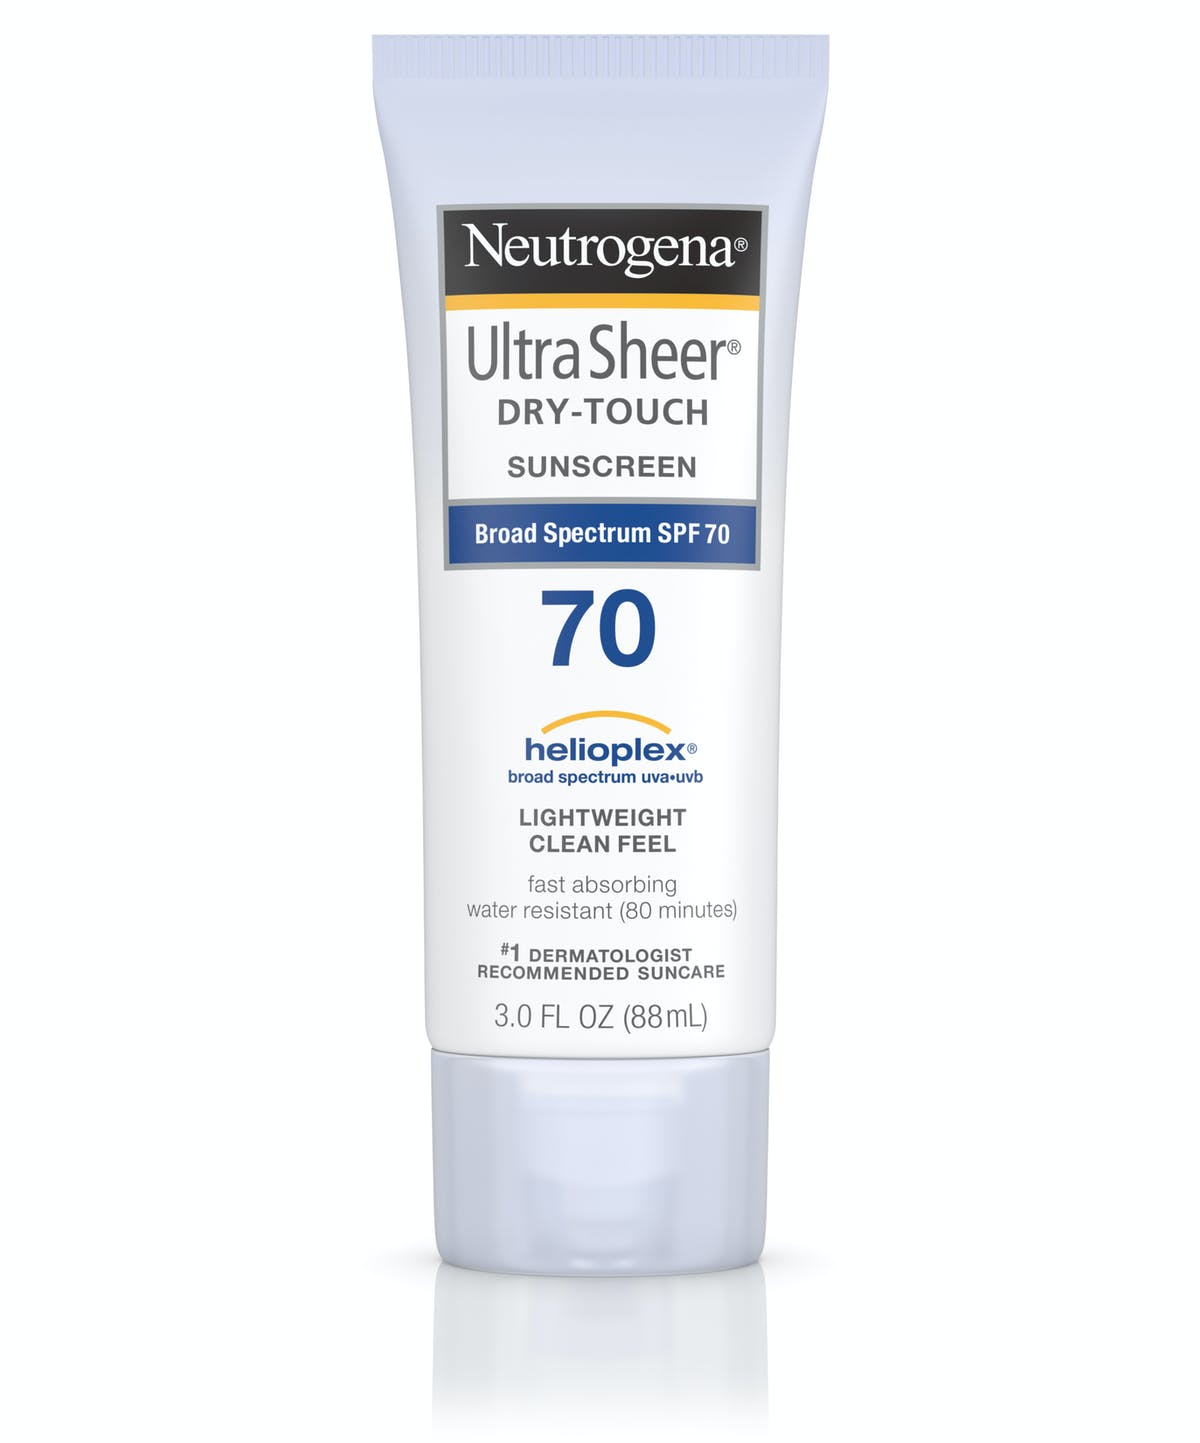 be0e82e6f Ultra Sheer ® Dry-Touch Sunscreen Broad Spectrum SPF 70